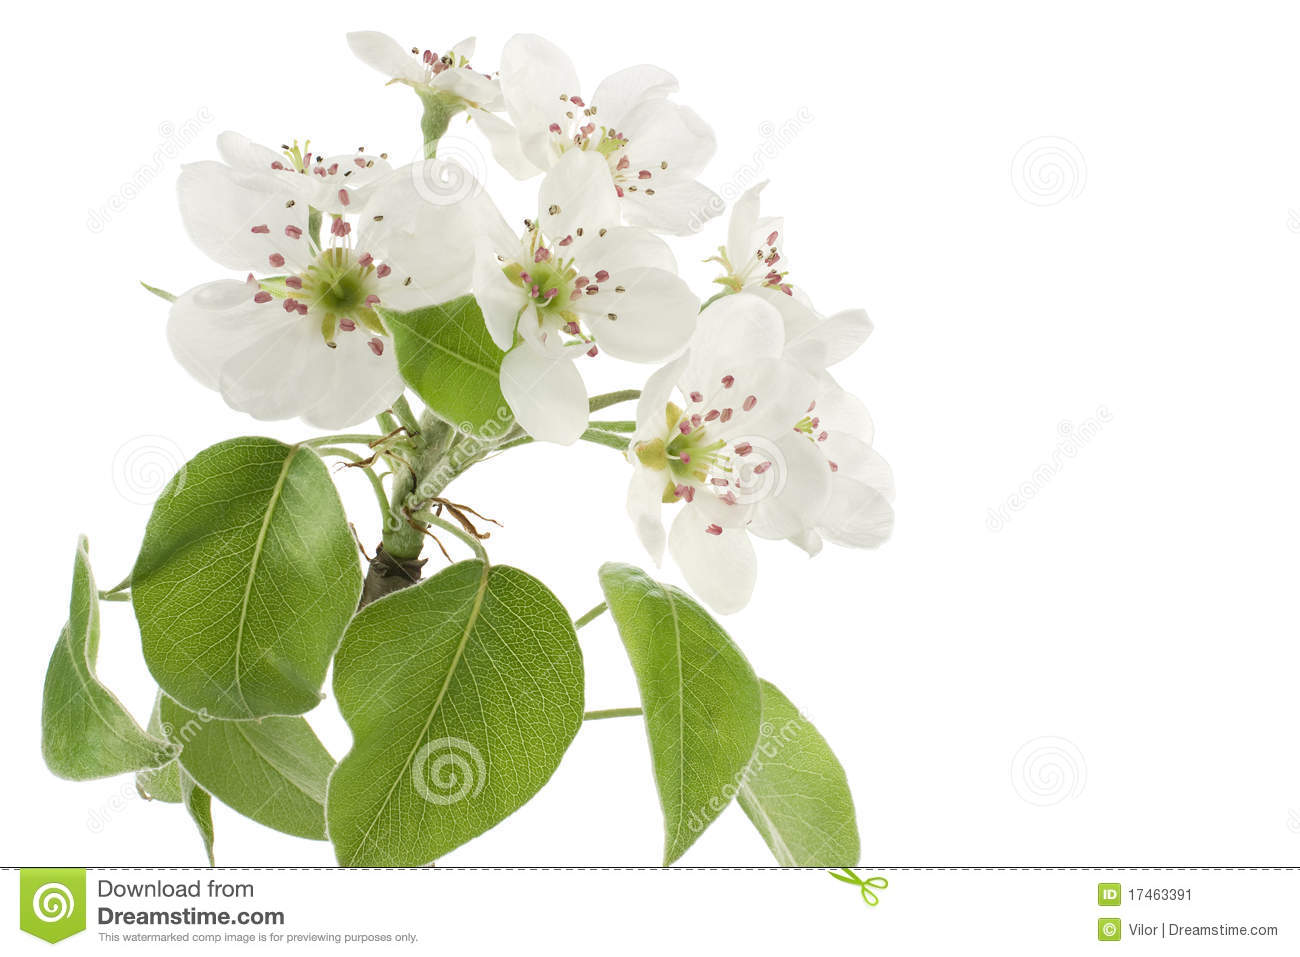 Pear Blossom Stock Image.